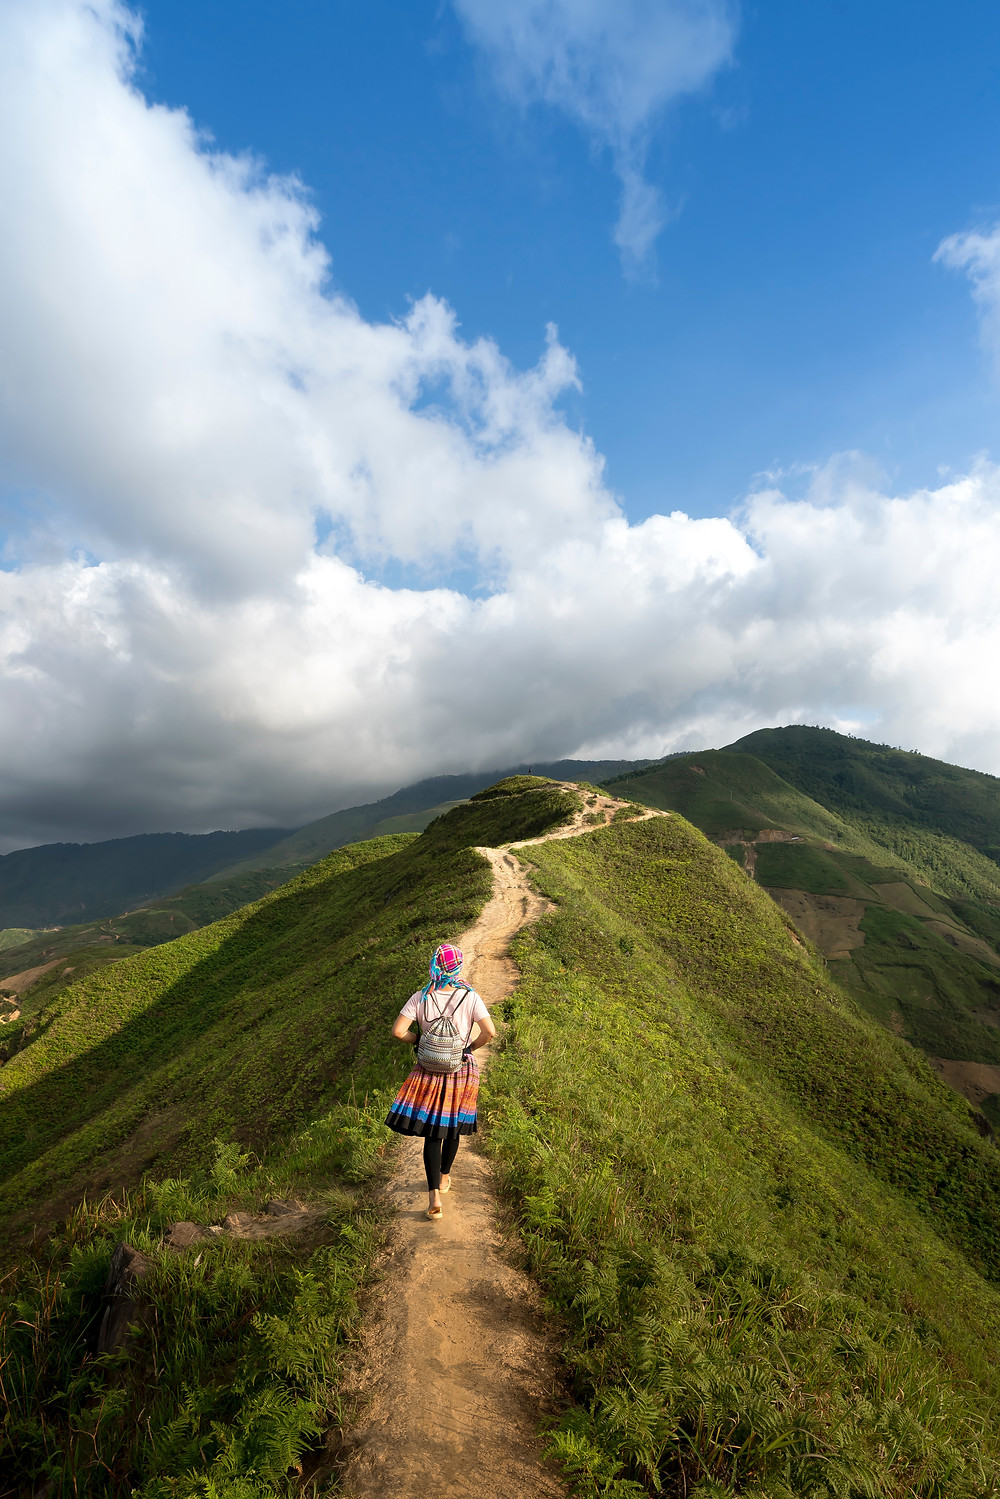 Young female hiker walks along defined trail atop a green ridgeline under puffy, white, cloudy skies